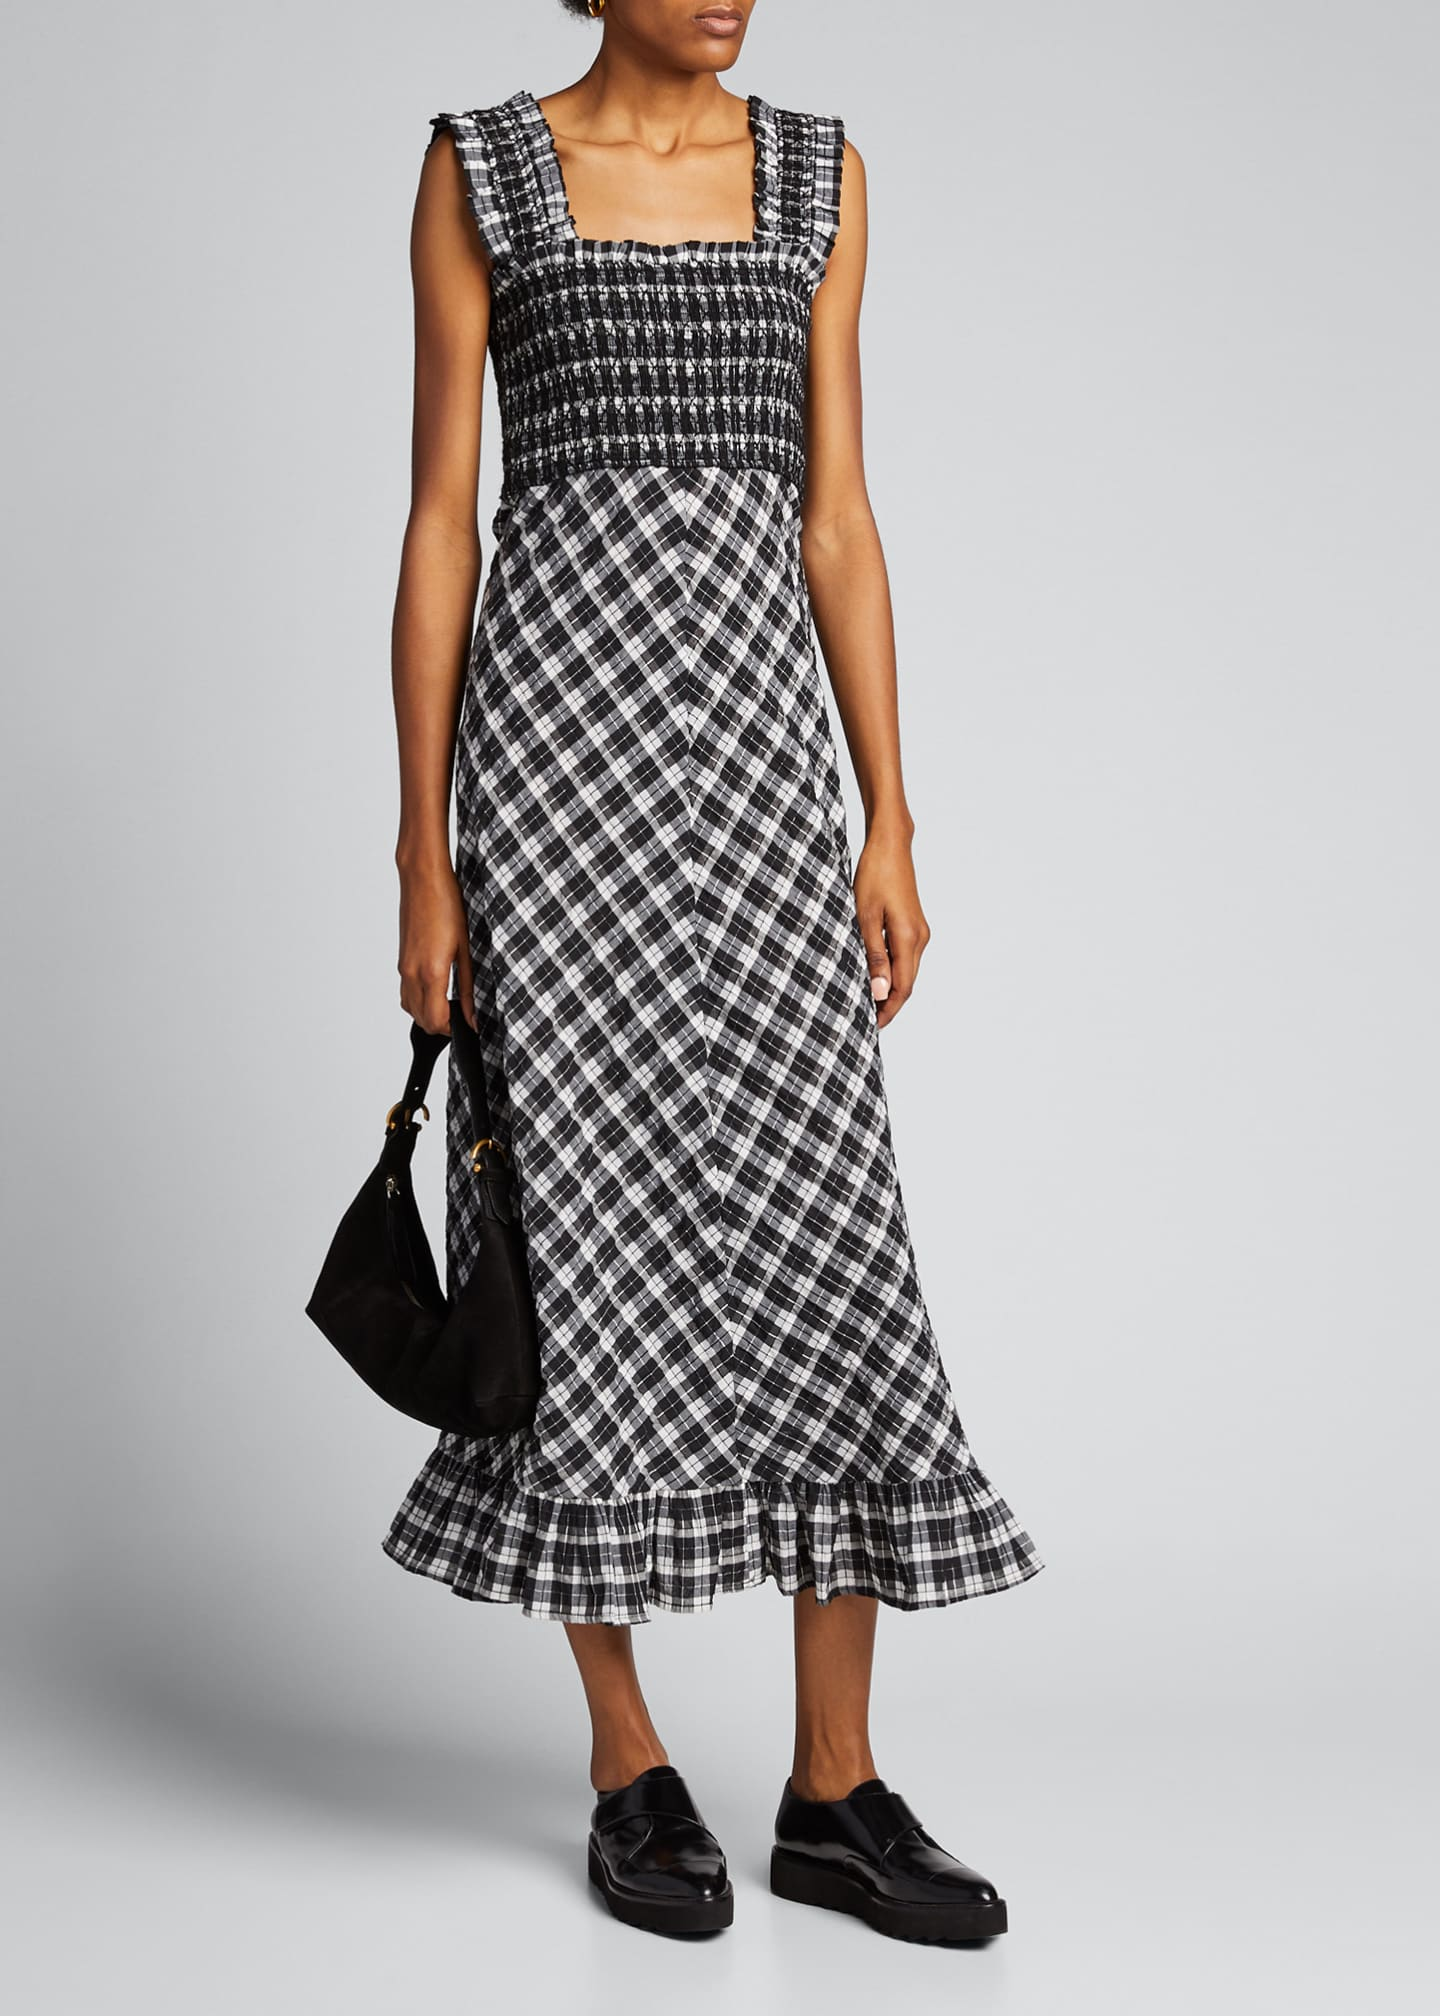 Ganni Seersucker Check Sleeveless Midi Dress Bergdorf Goodman